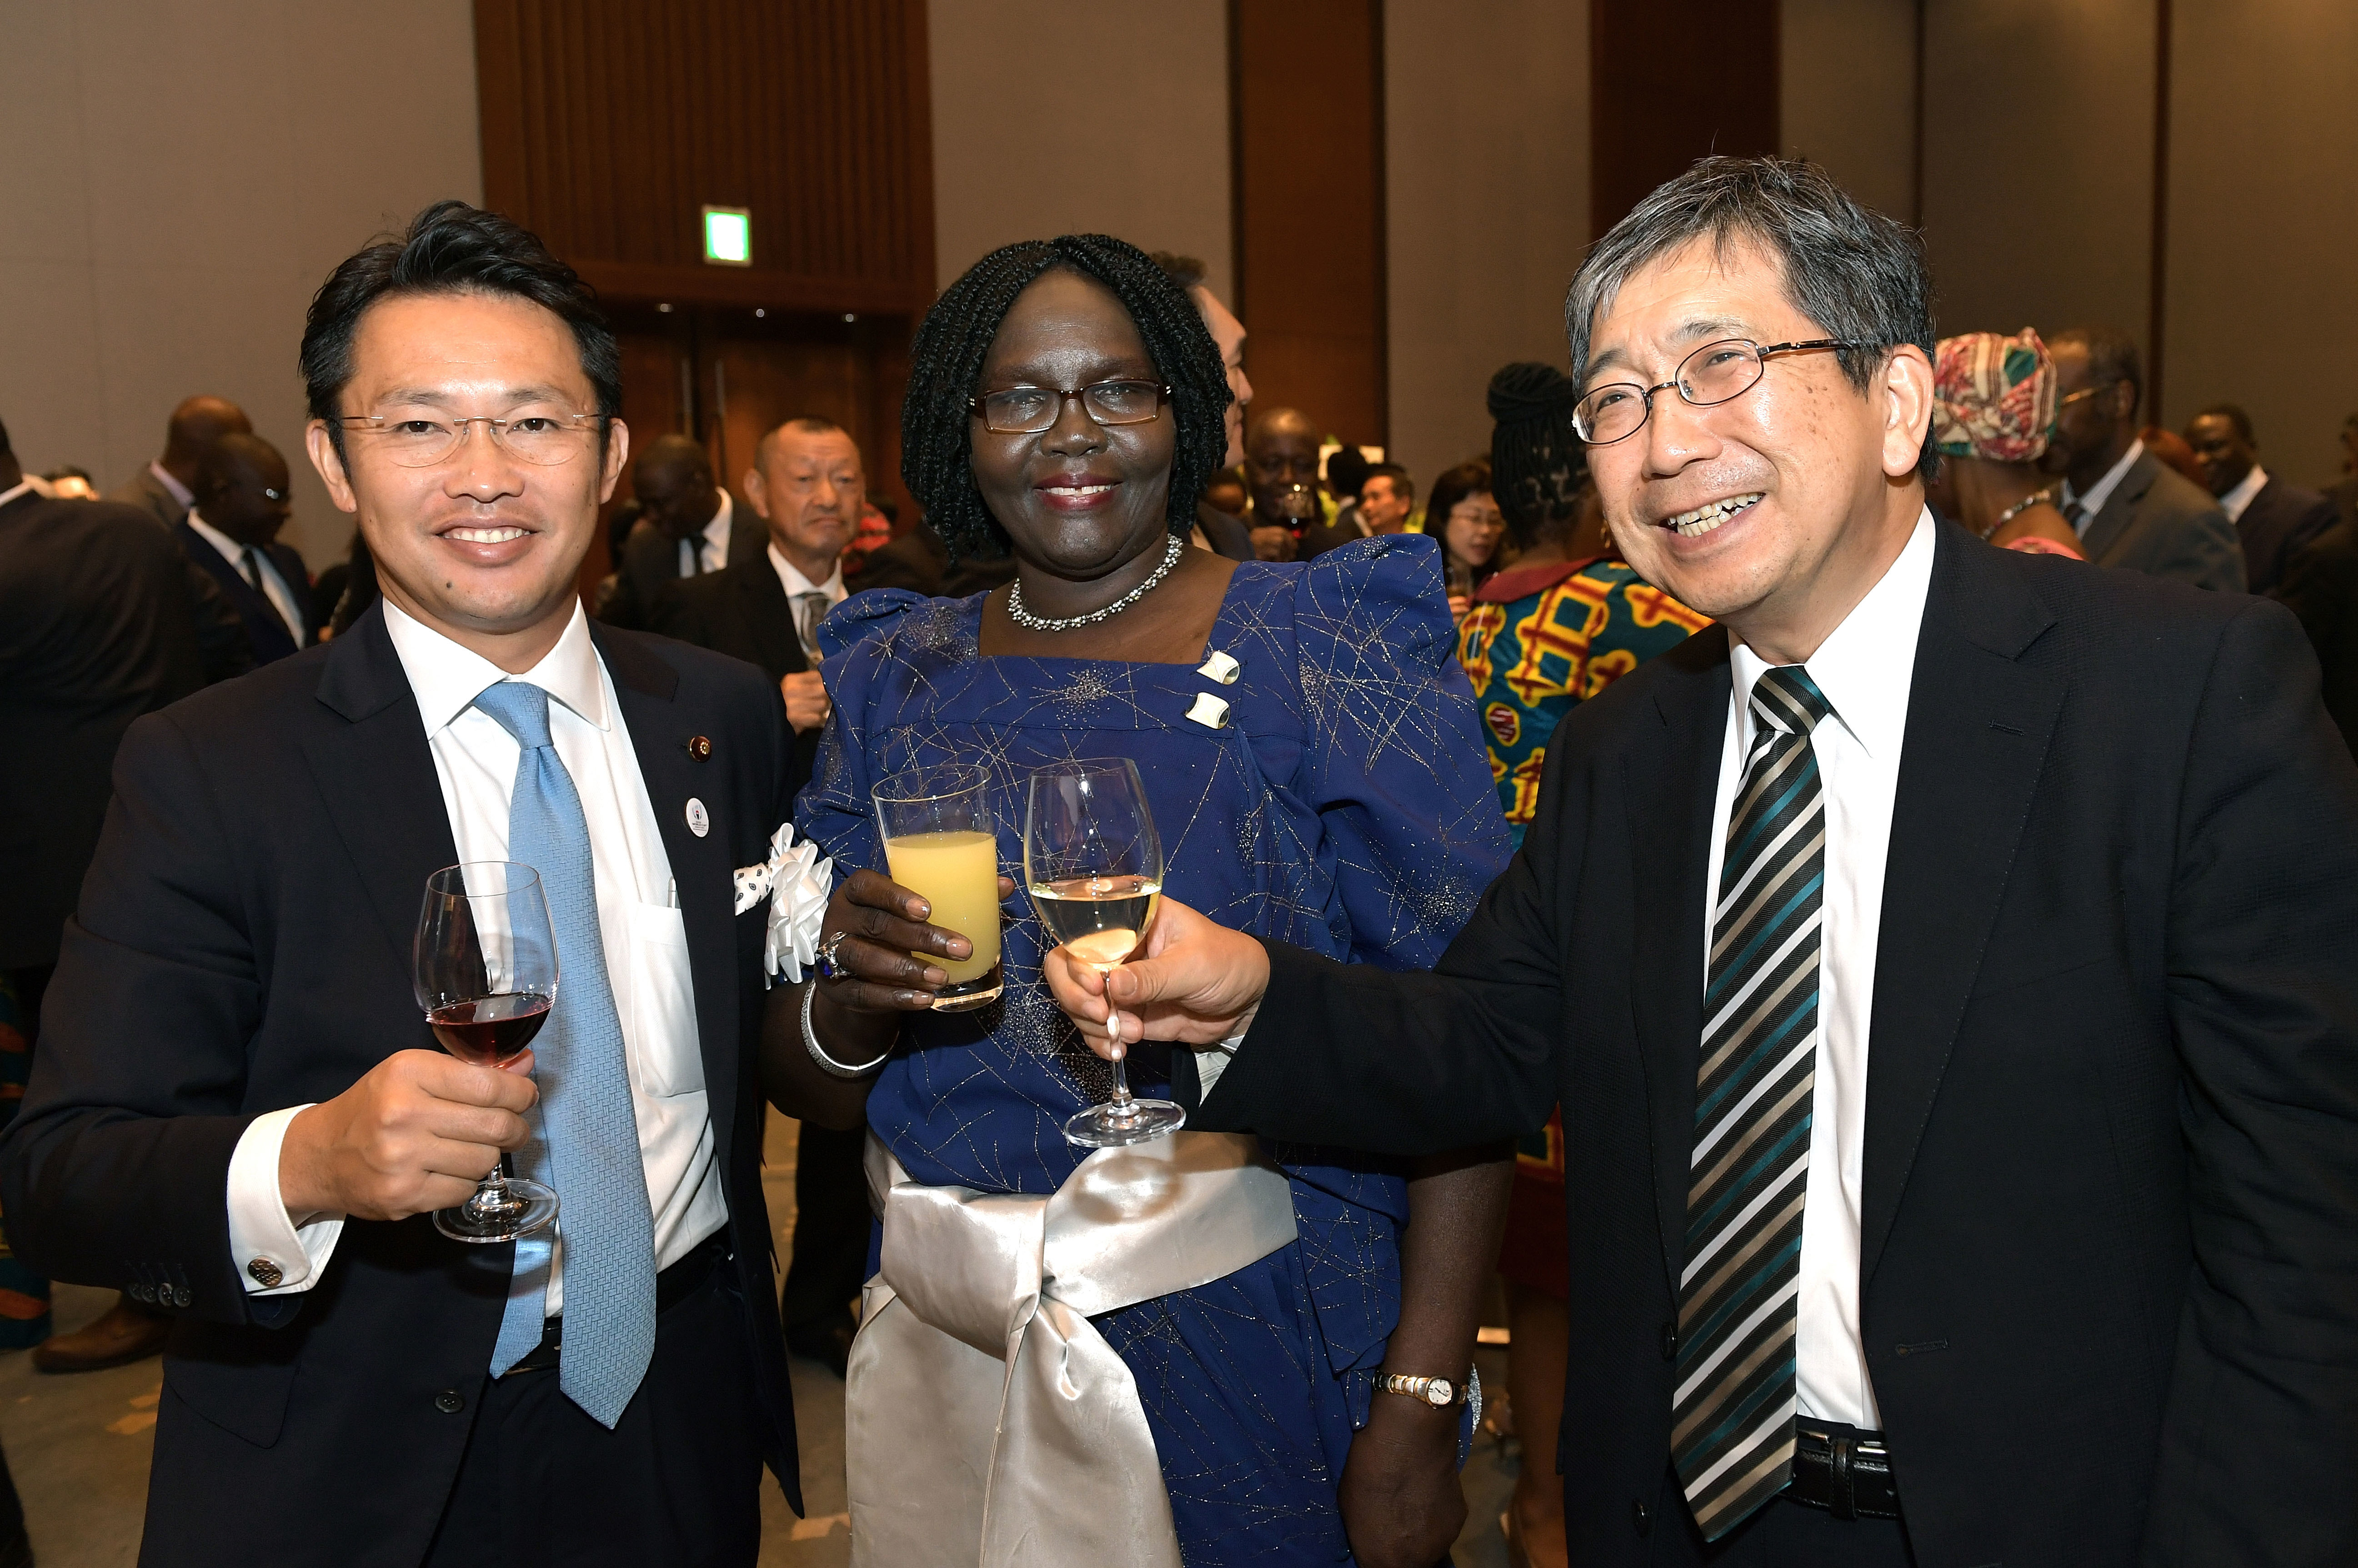 Uganda Ambassador Betty Grace Akech-Okullo with Parliamentary Vice Minister for Foreign Affairs Shinichi Nakatani (left), and Ambassador of Japan to Uganda Kazuaki Kameda (right) during a reception to celebrate the 57th Anniversary of Uganda's Independence at Palace Hotel Tokyo      on Oct. 9.  yoshiaki miura